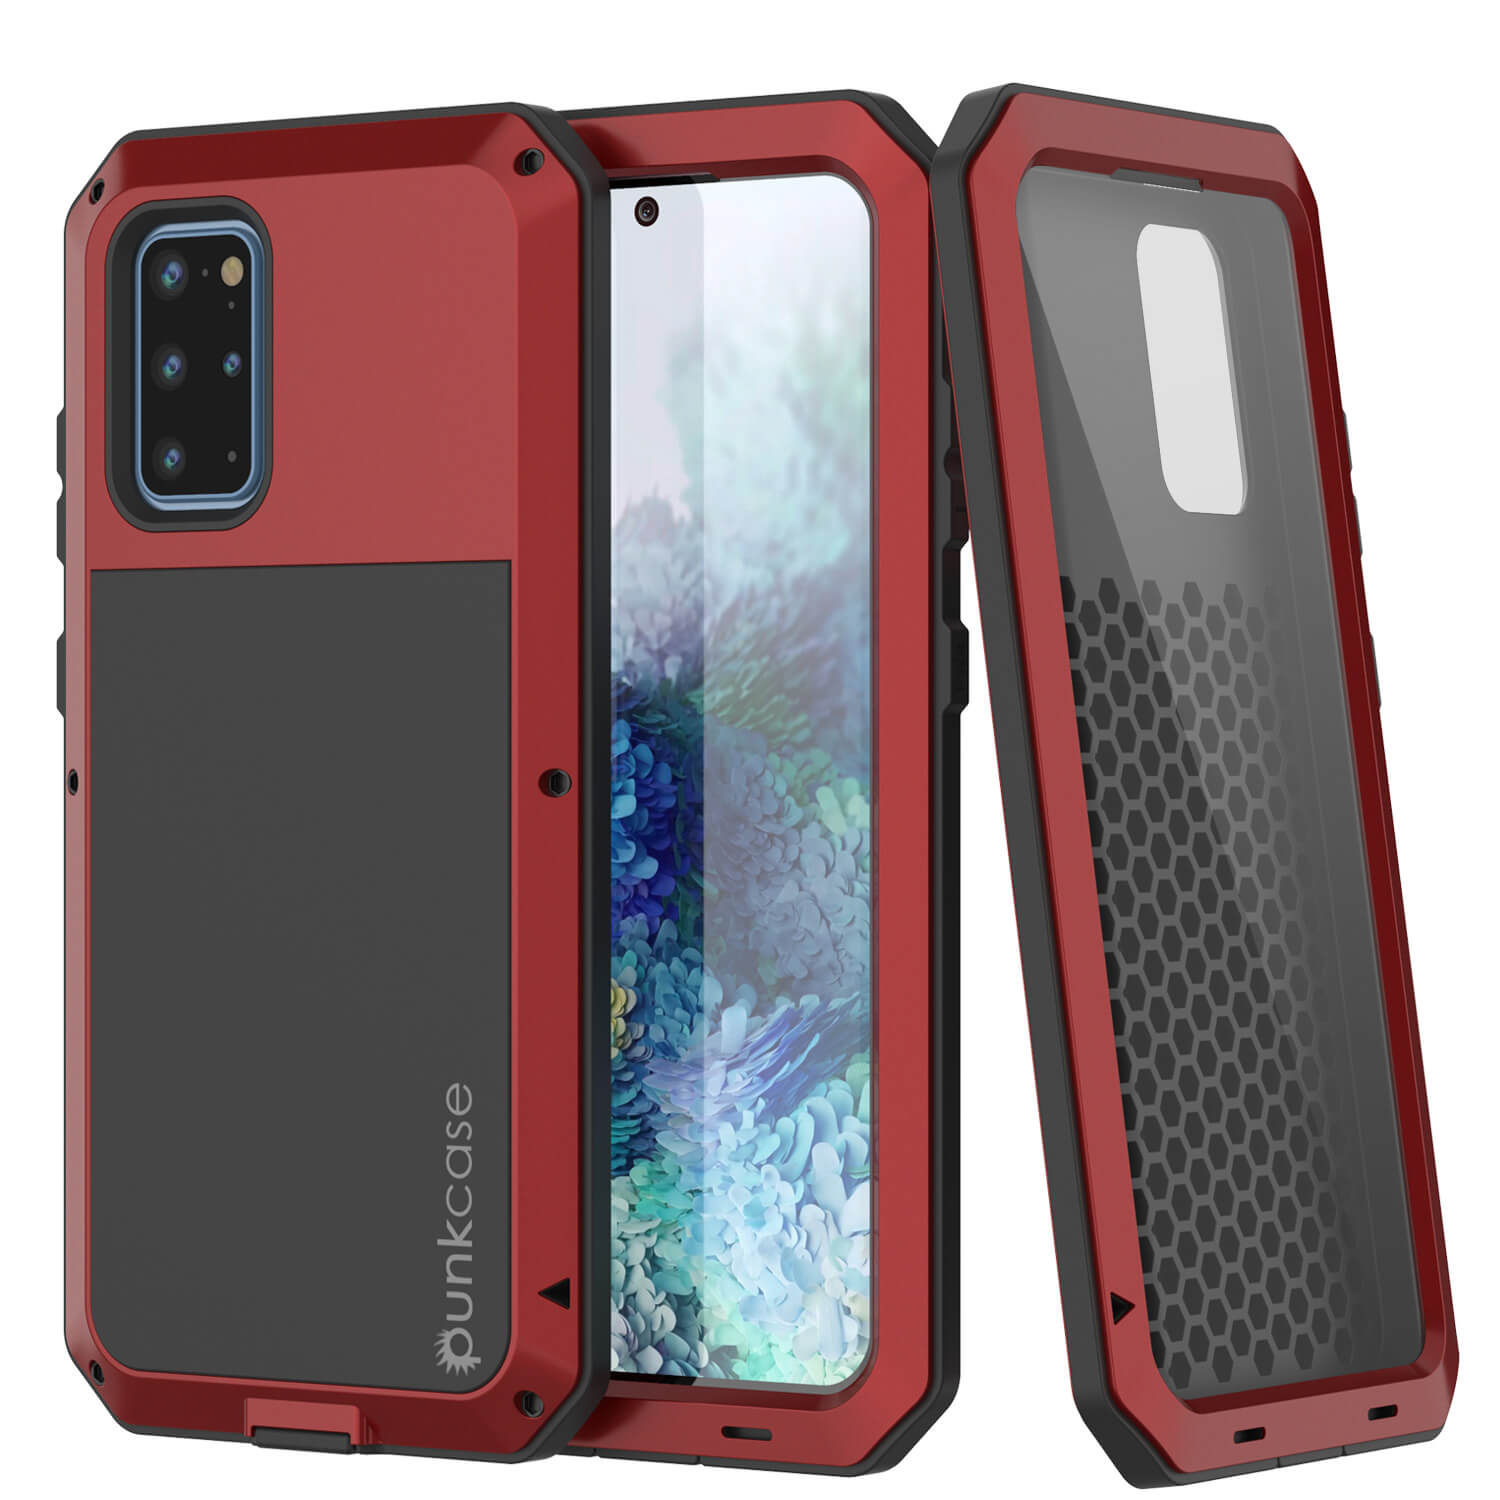 Galaxy s20+ Plus Metal Case, Heavy Duty Military Grade Rugged Armor Cover [Red]